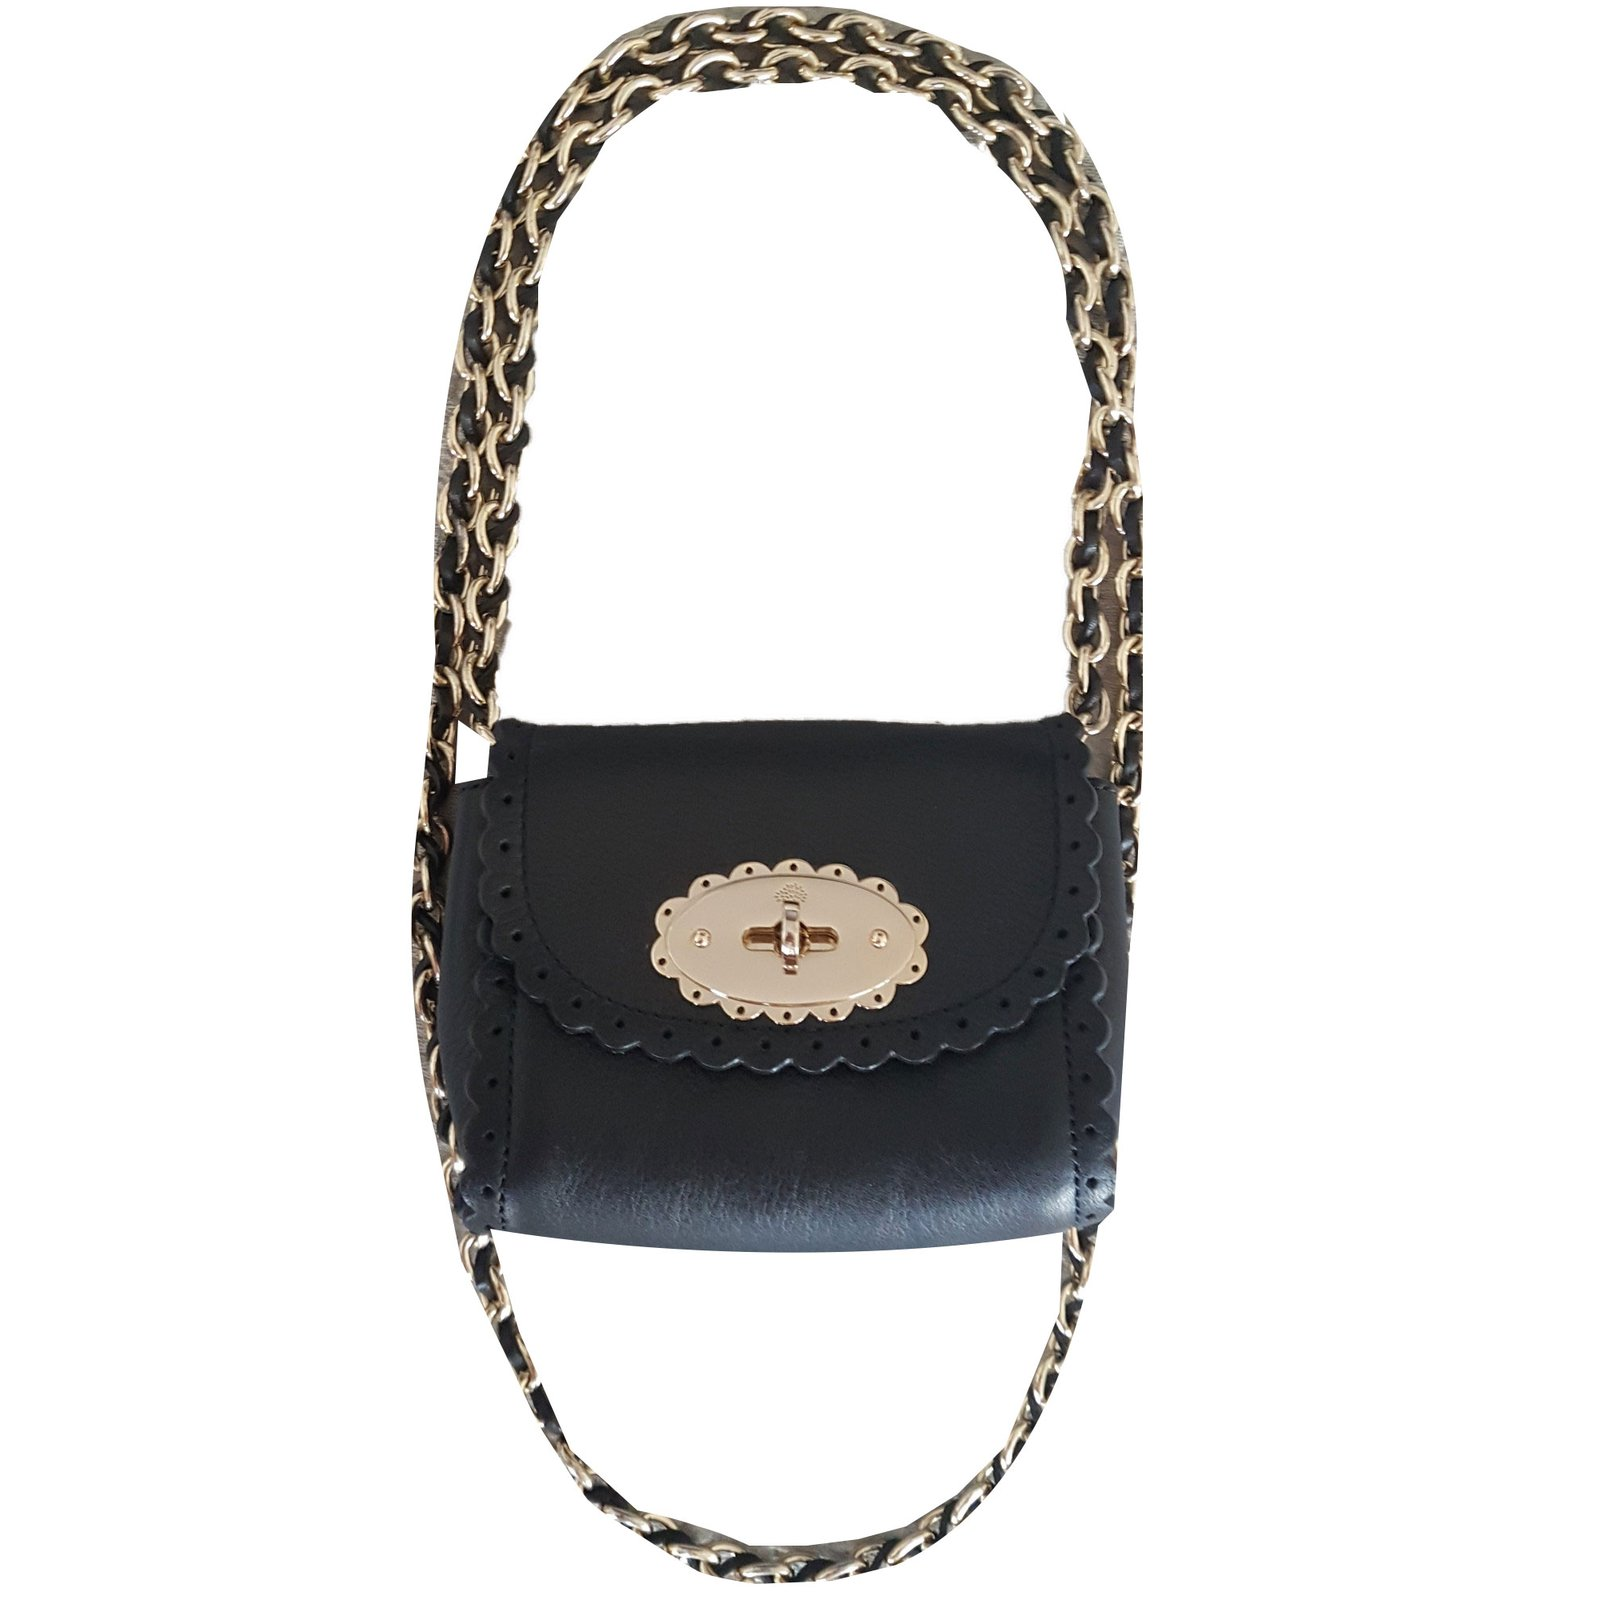 90301500c598 ... coupon code for mulberry mini lily cookie bag handbags leather black  ref.78648 2f38e 2a7ad